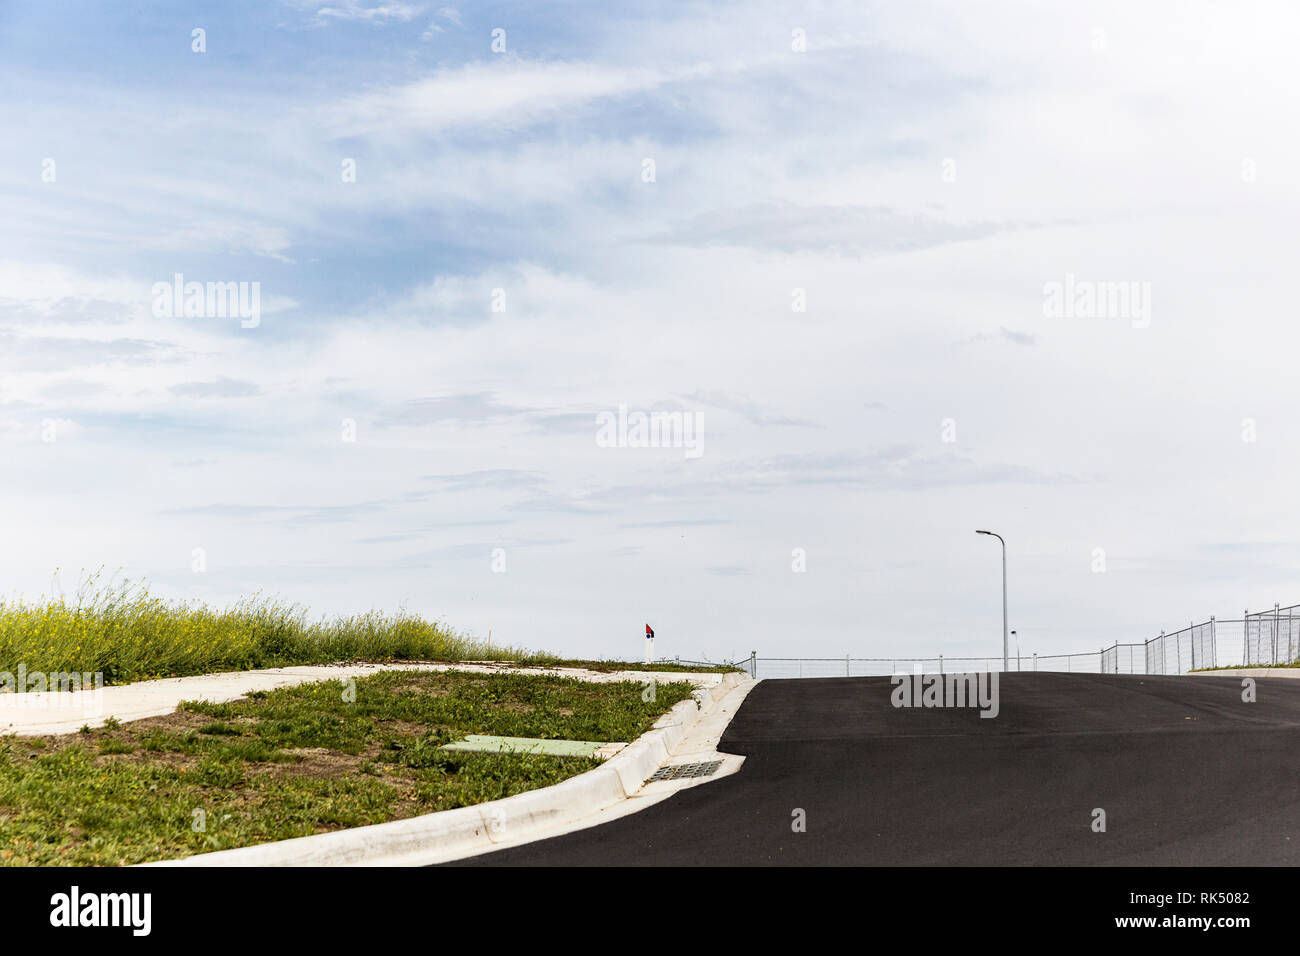 New developed area without any homes built on vacant land. - Stock Image